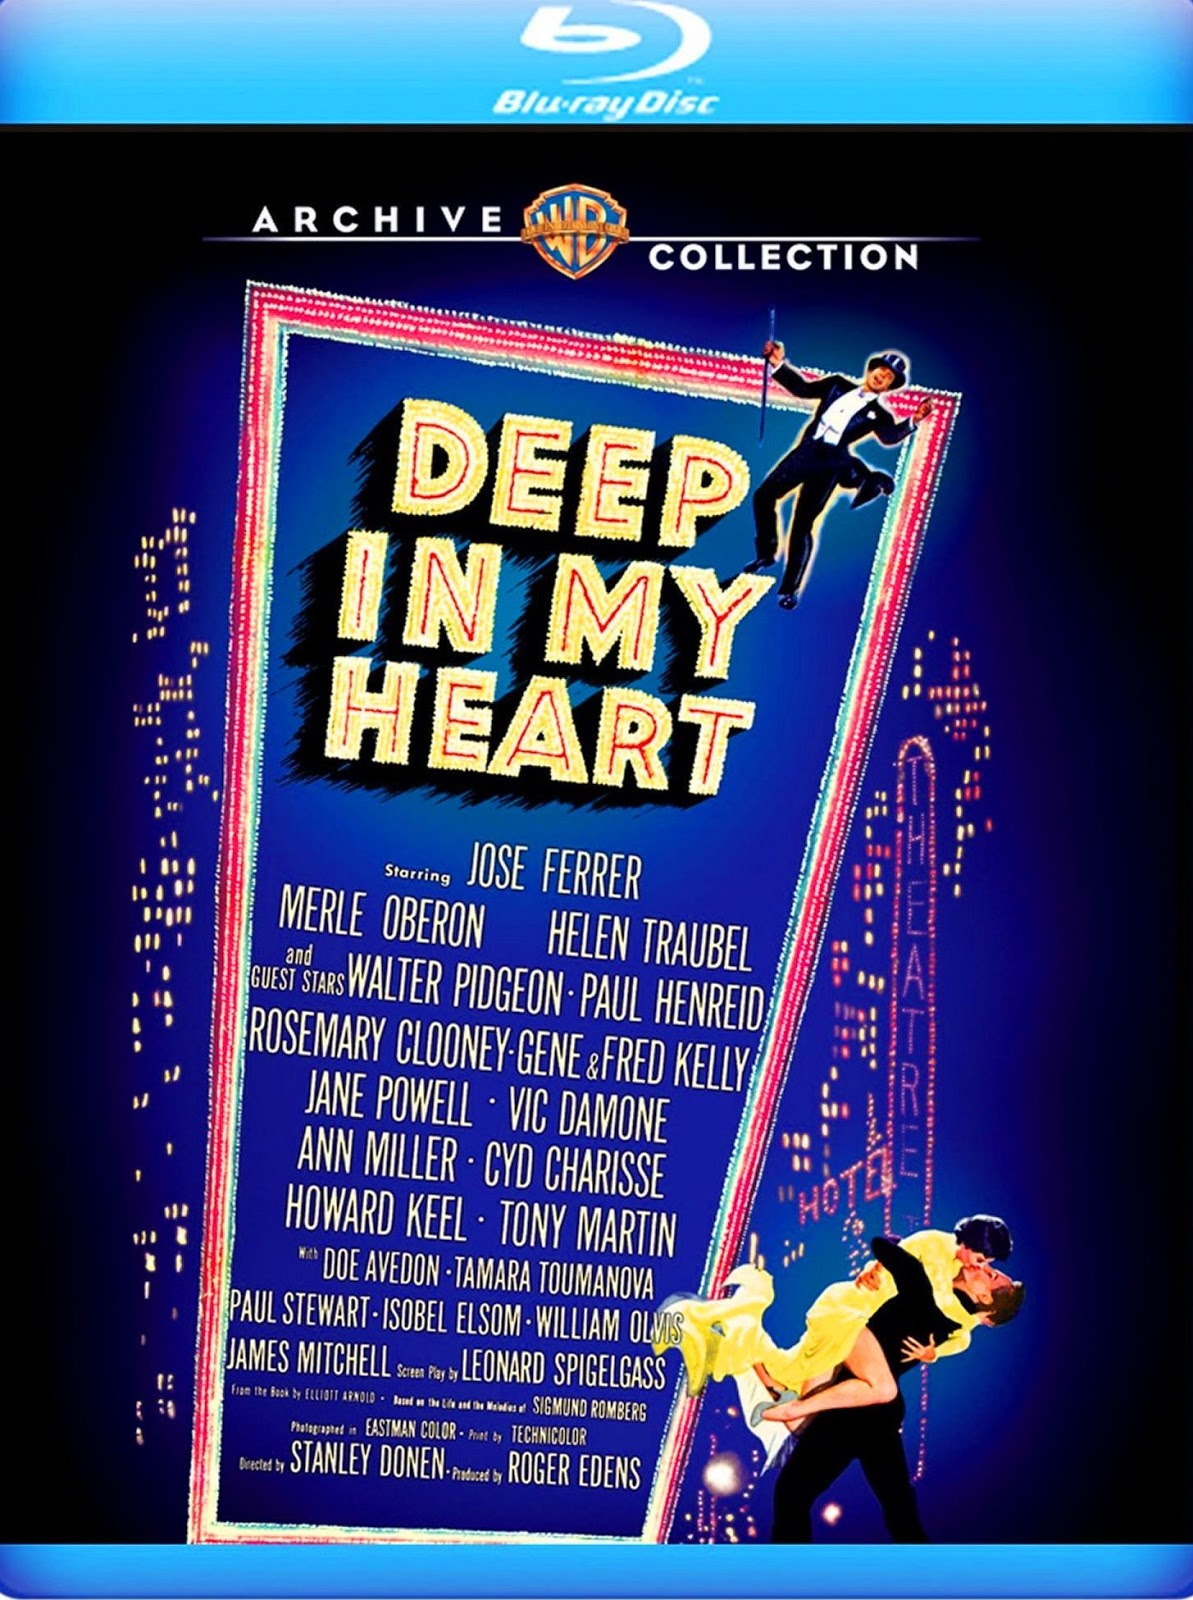 Deep in My Heart (1954 film) NIXPIX DVD BLURAY Reviews DEEP IN MY HEART Bluray MGM 1954